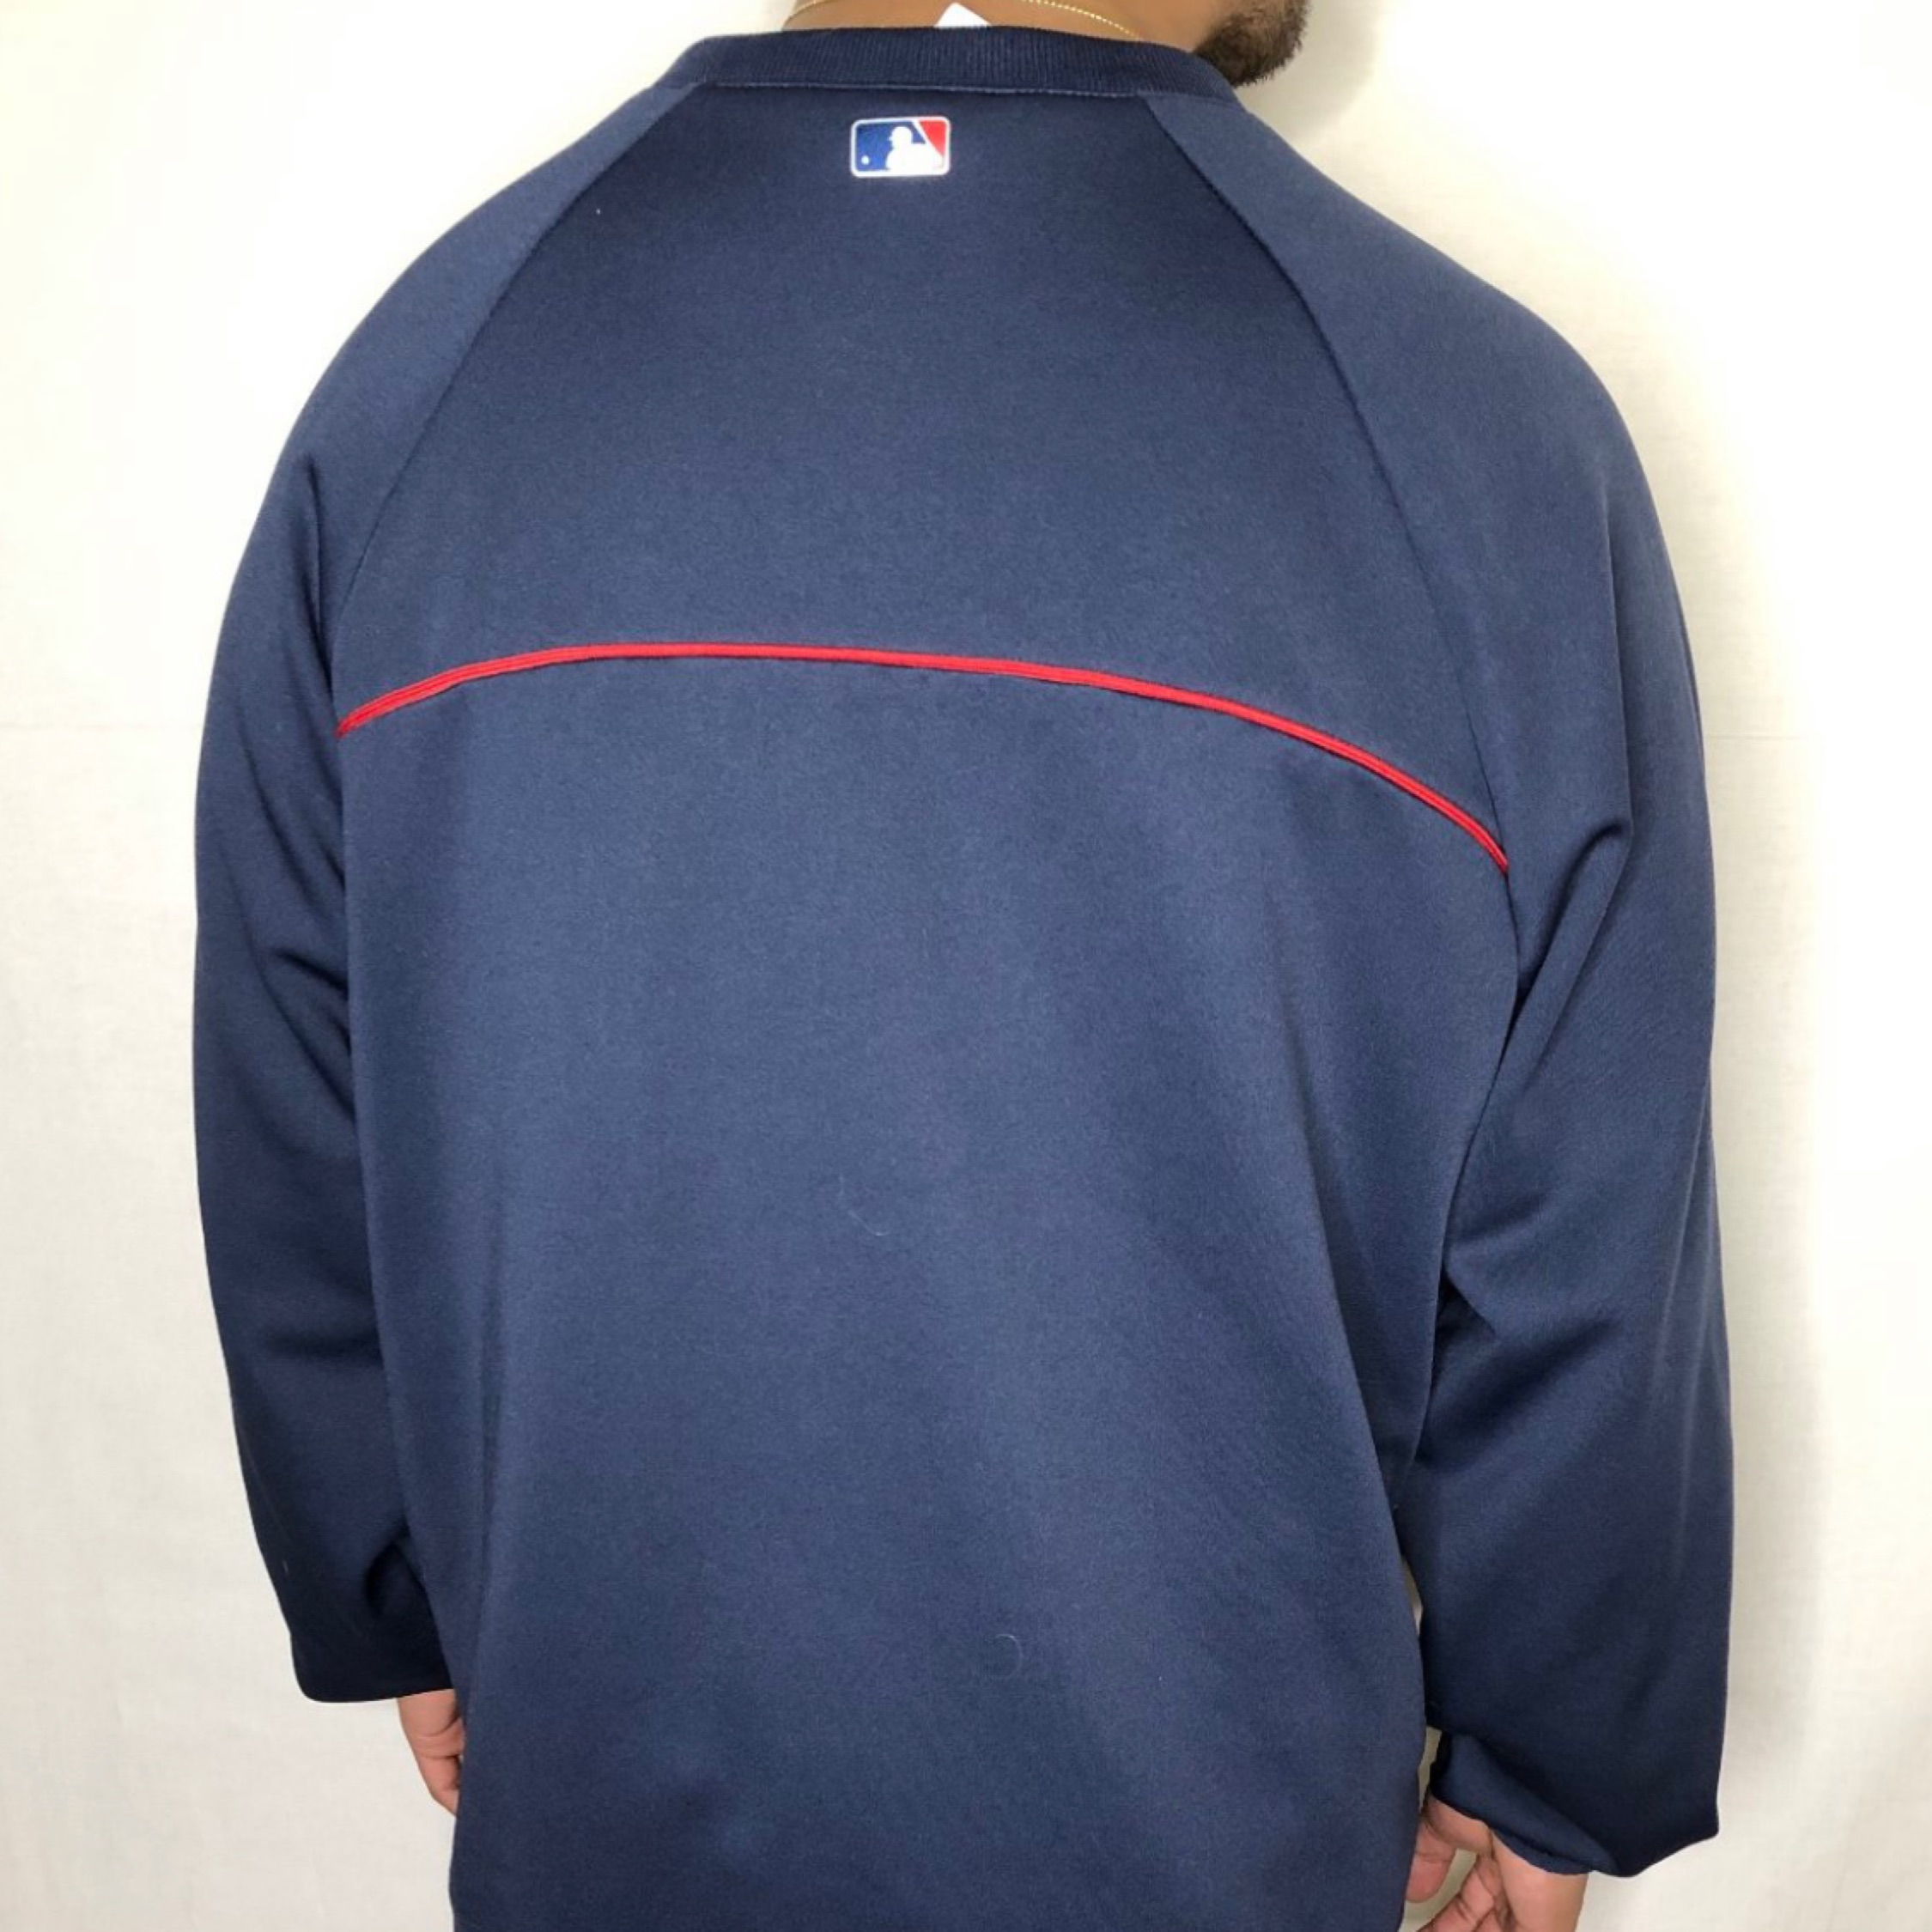 quality design 0f5b6 732ad Vintage Atlanta Braves Sweatshirt